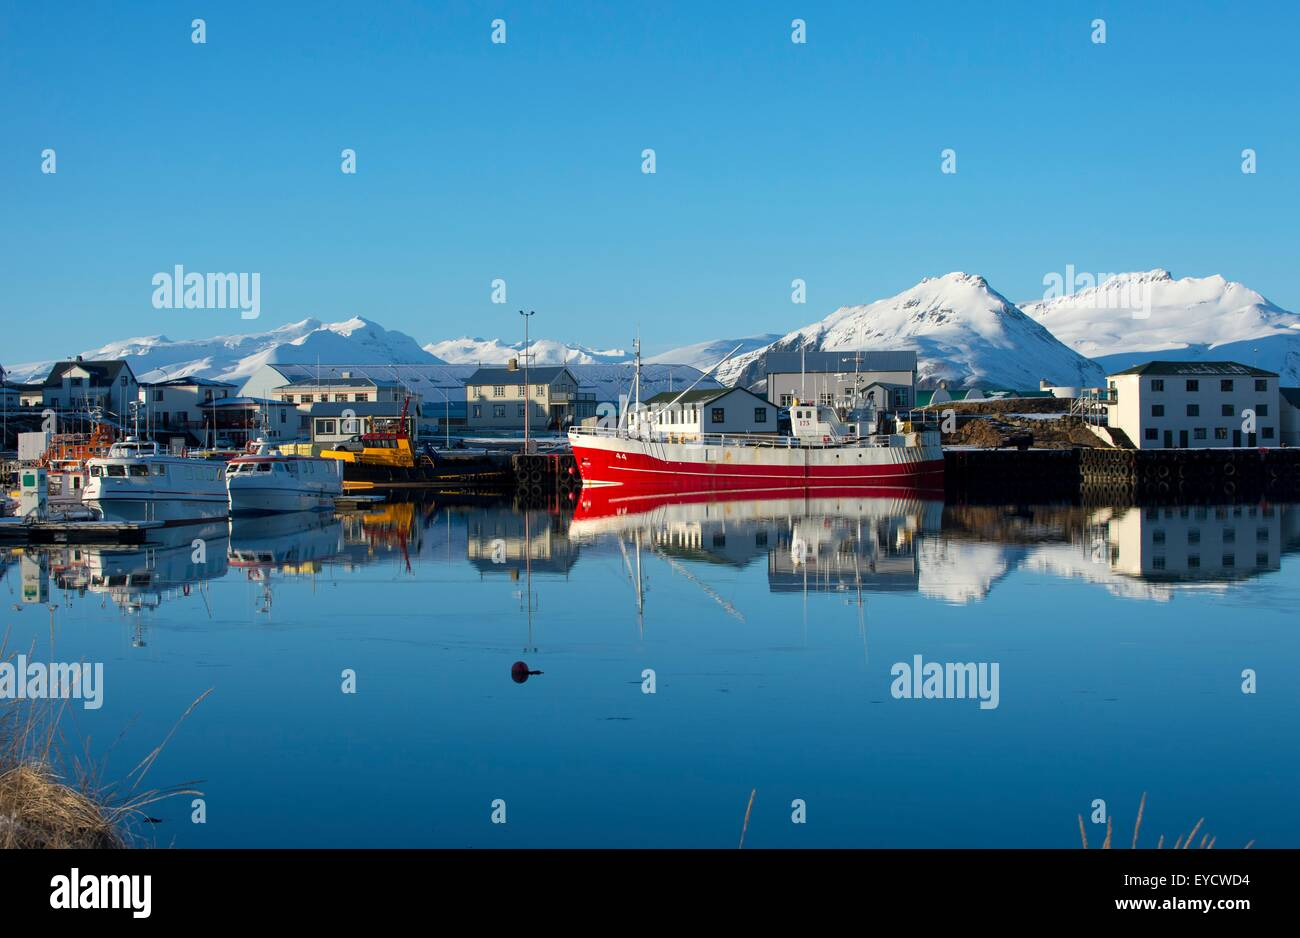 View of fishing boats and snow covered mountains, Hofn harbor, Iceland Stock Photo